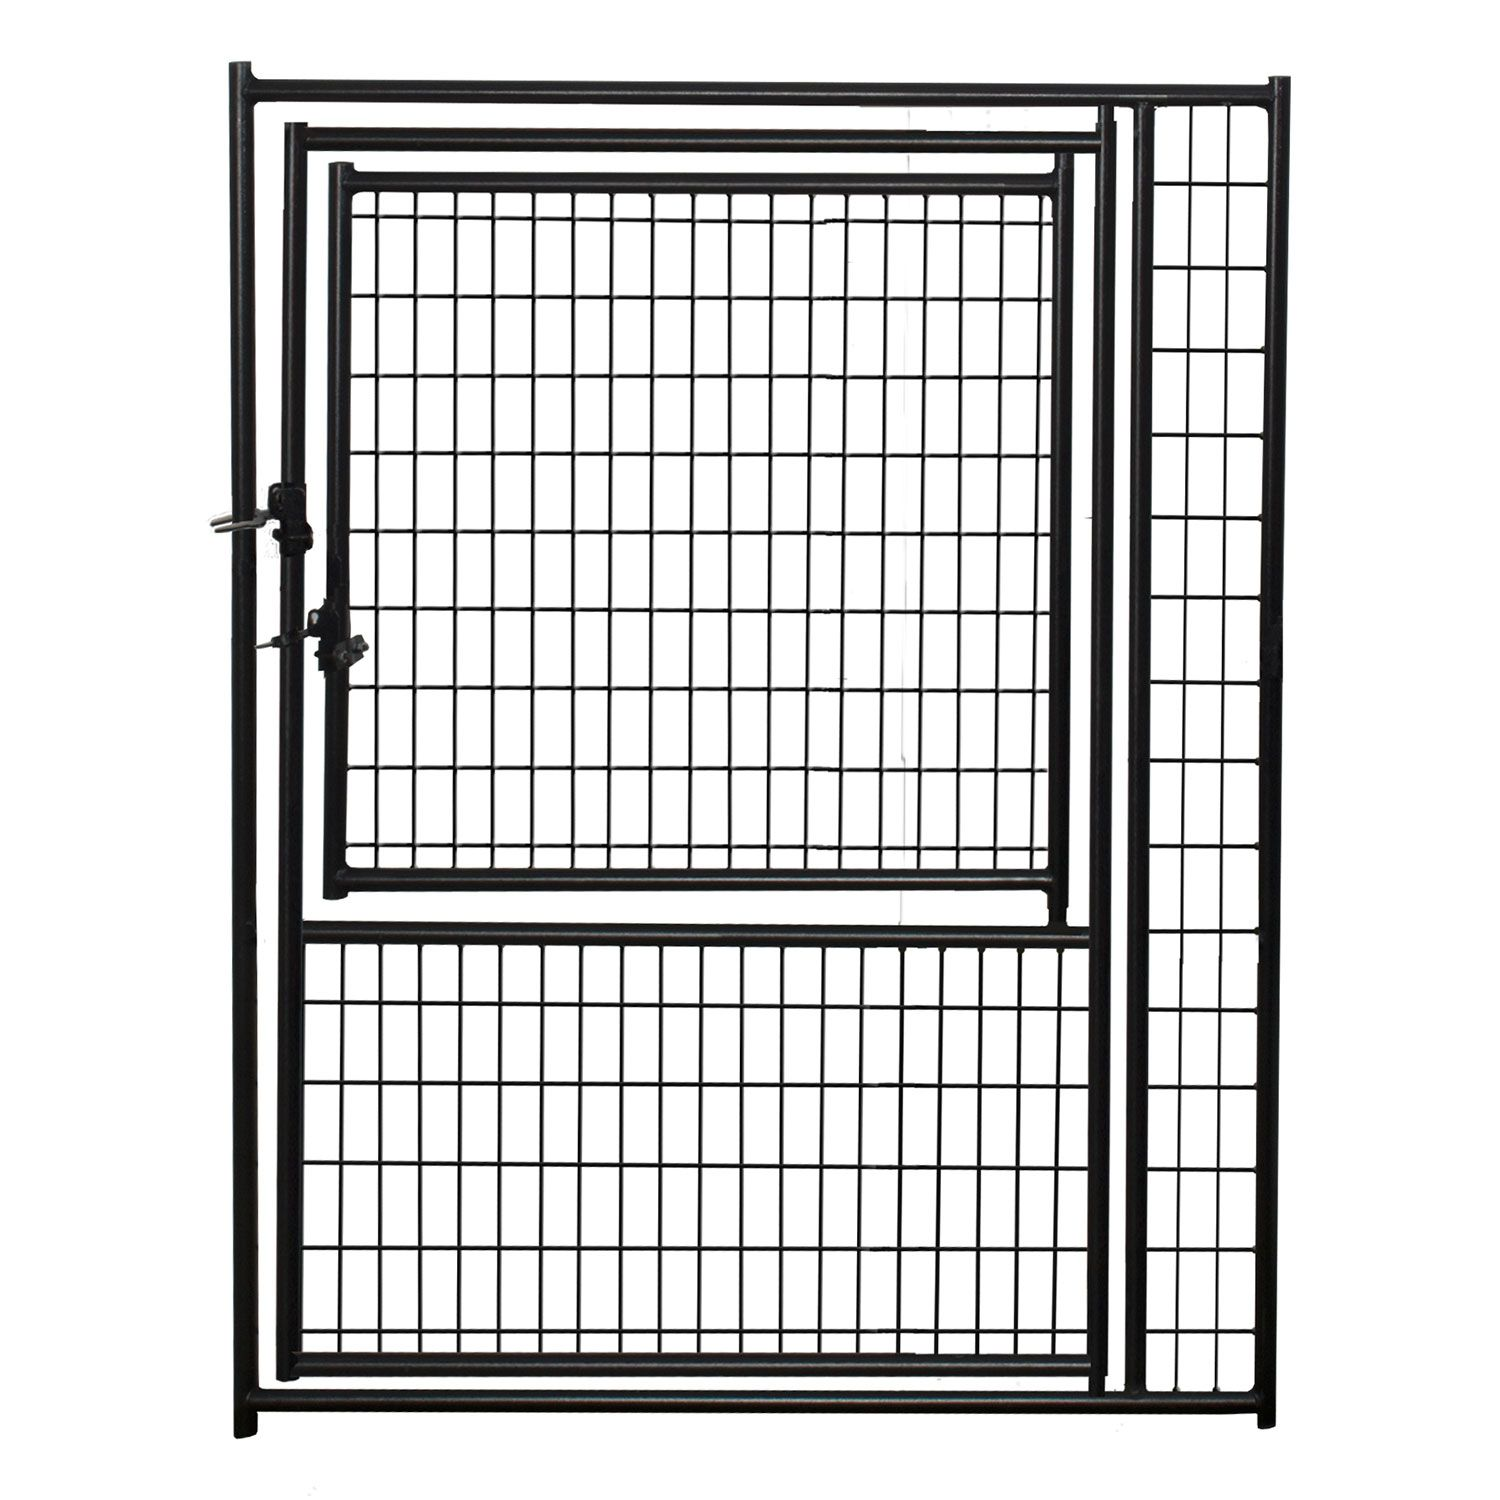 Jewett-Cameron Lucky Dog Black Welded Wire Kennel Panels with Gate in Gate